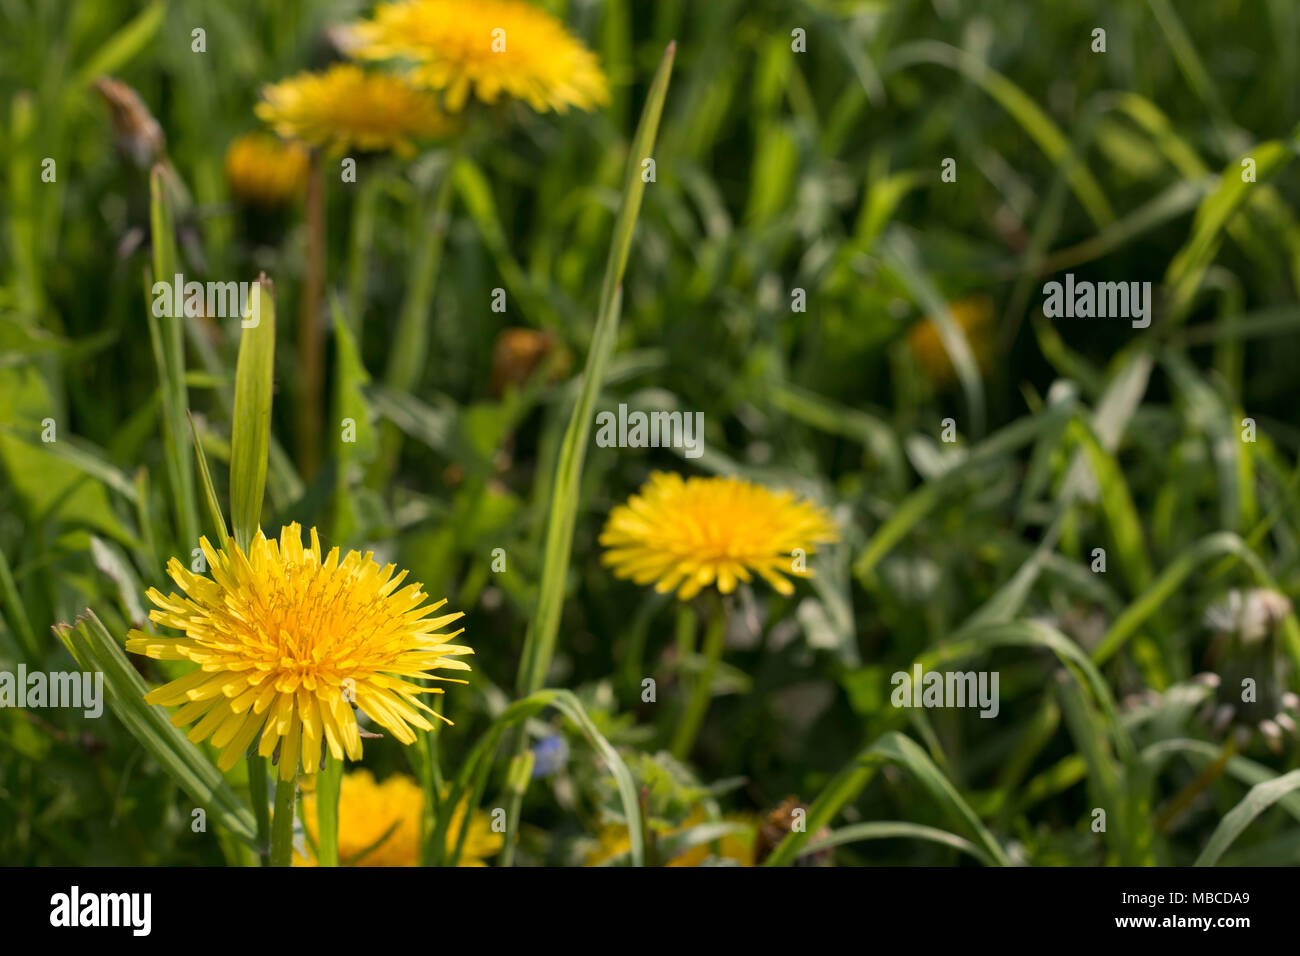 Dandelions Typical Yellow Flowers That Bloom In Spring Close Up Of